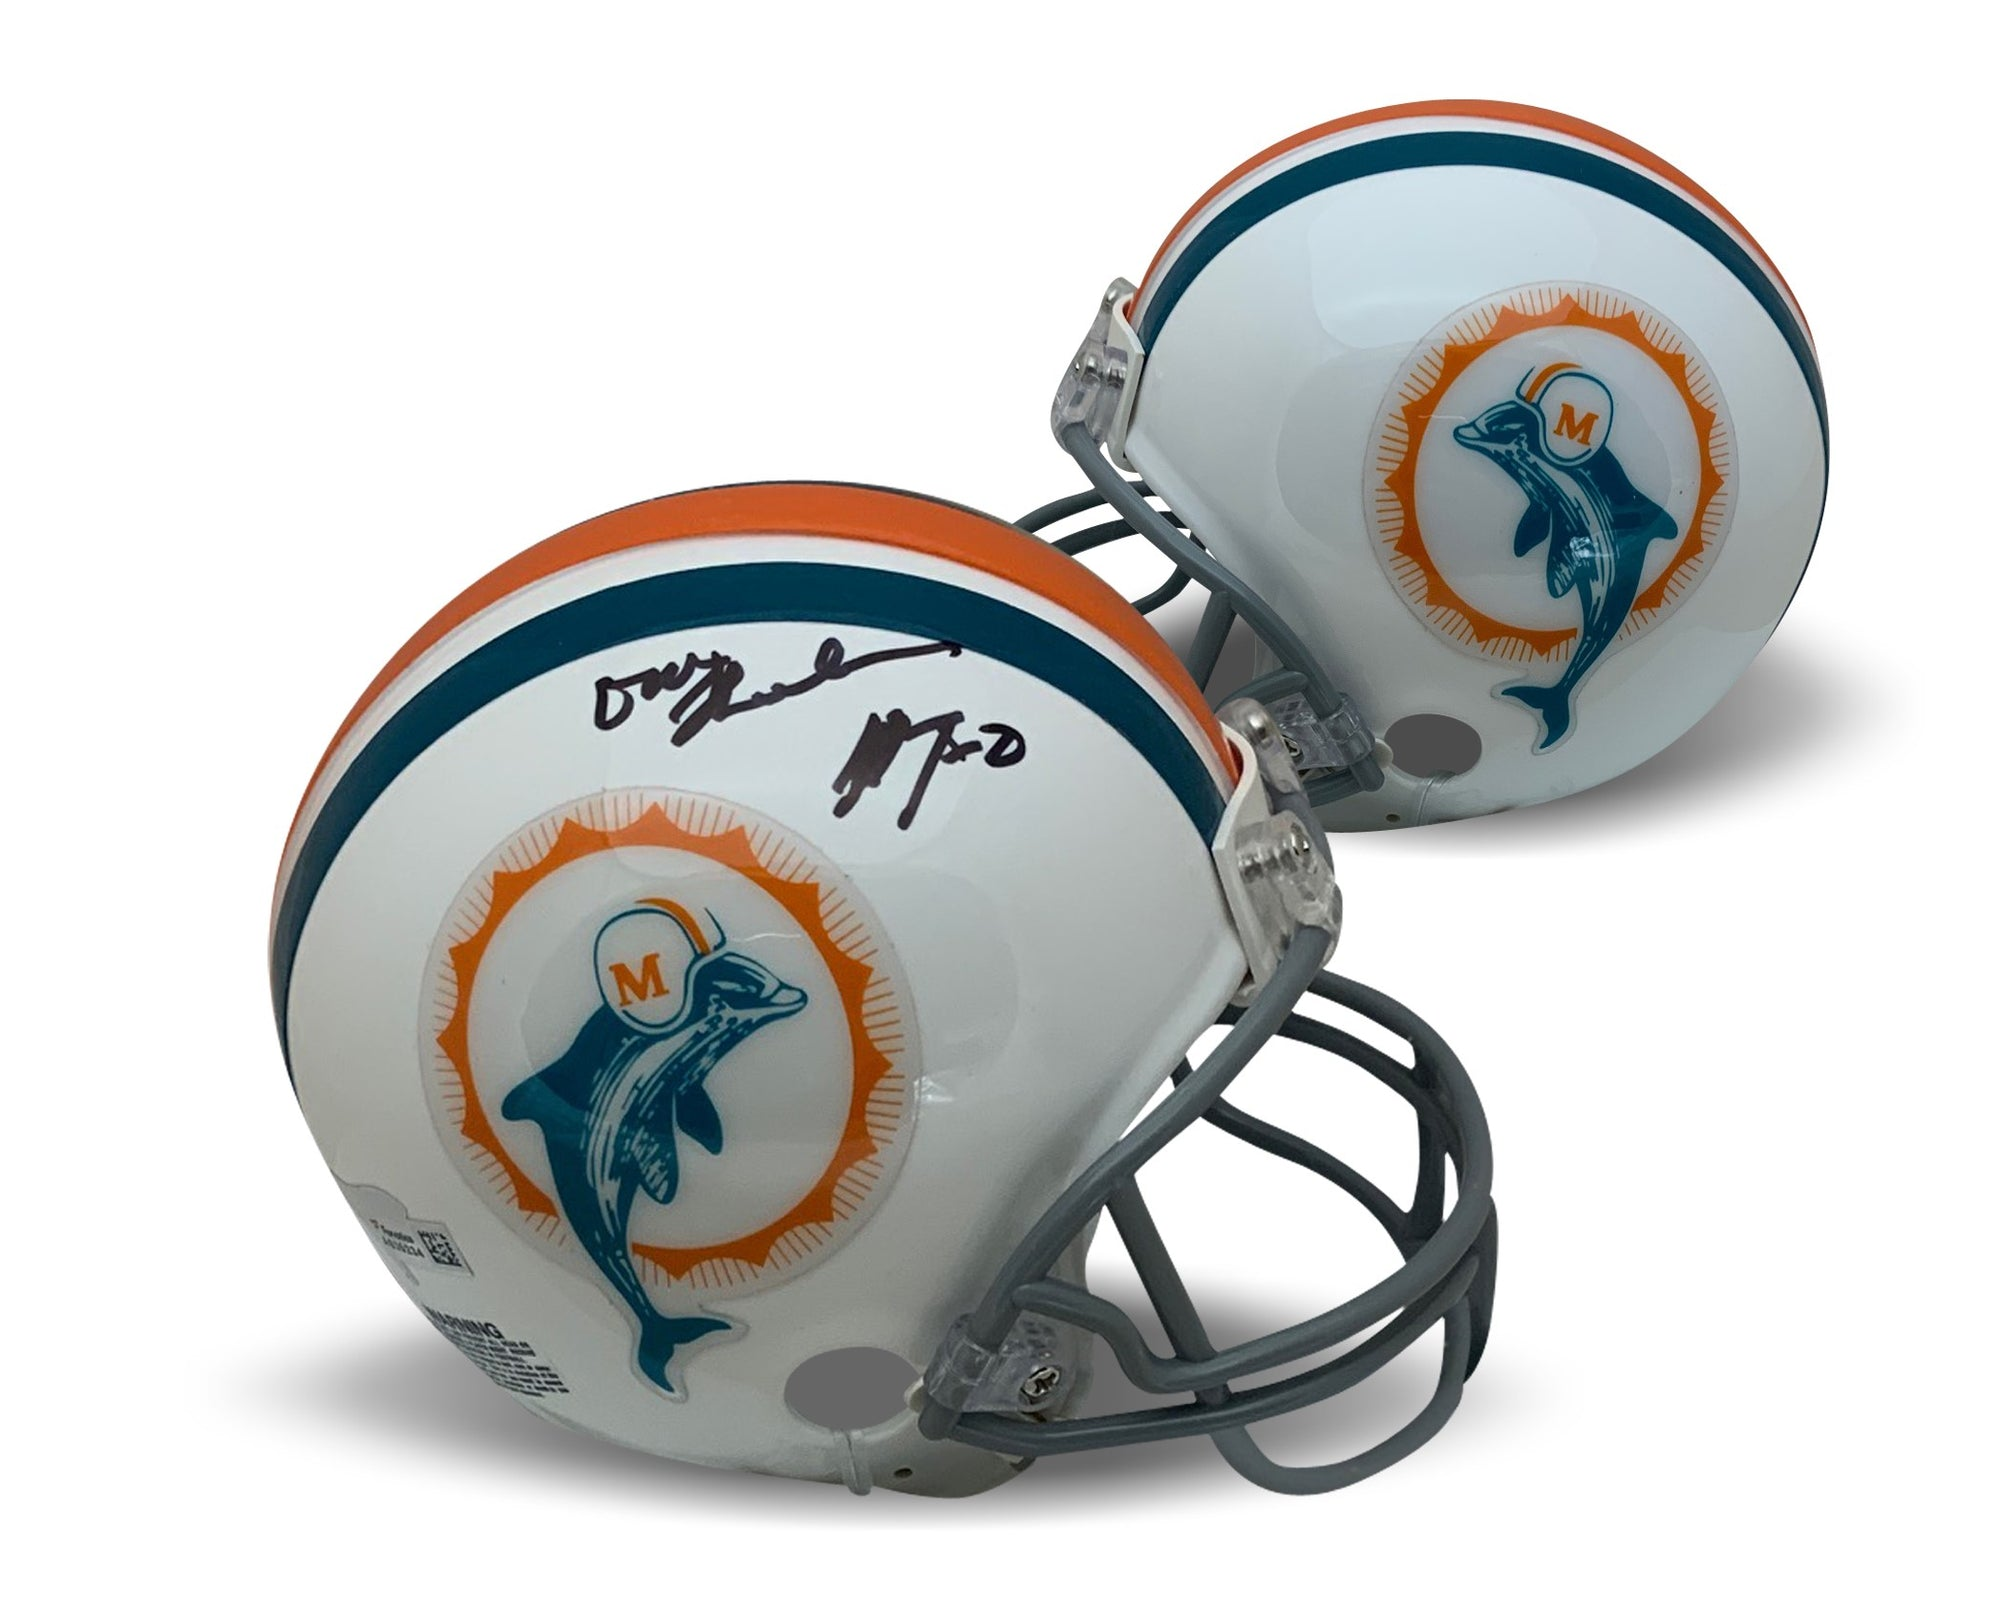 Don Shula Autographed NFL Miami Dolphins Signed Football Mini Helmet 17-0 Perfect Season Fanatics Authentic COA-Powers Sports Memorabilia